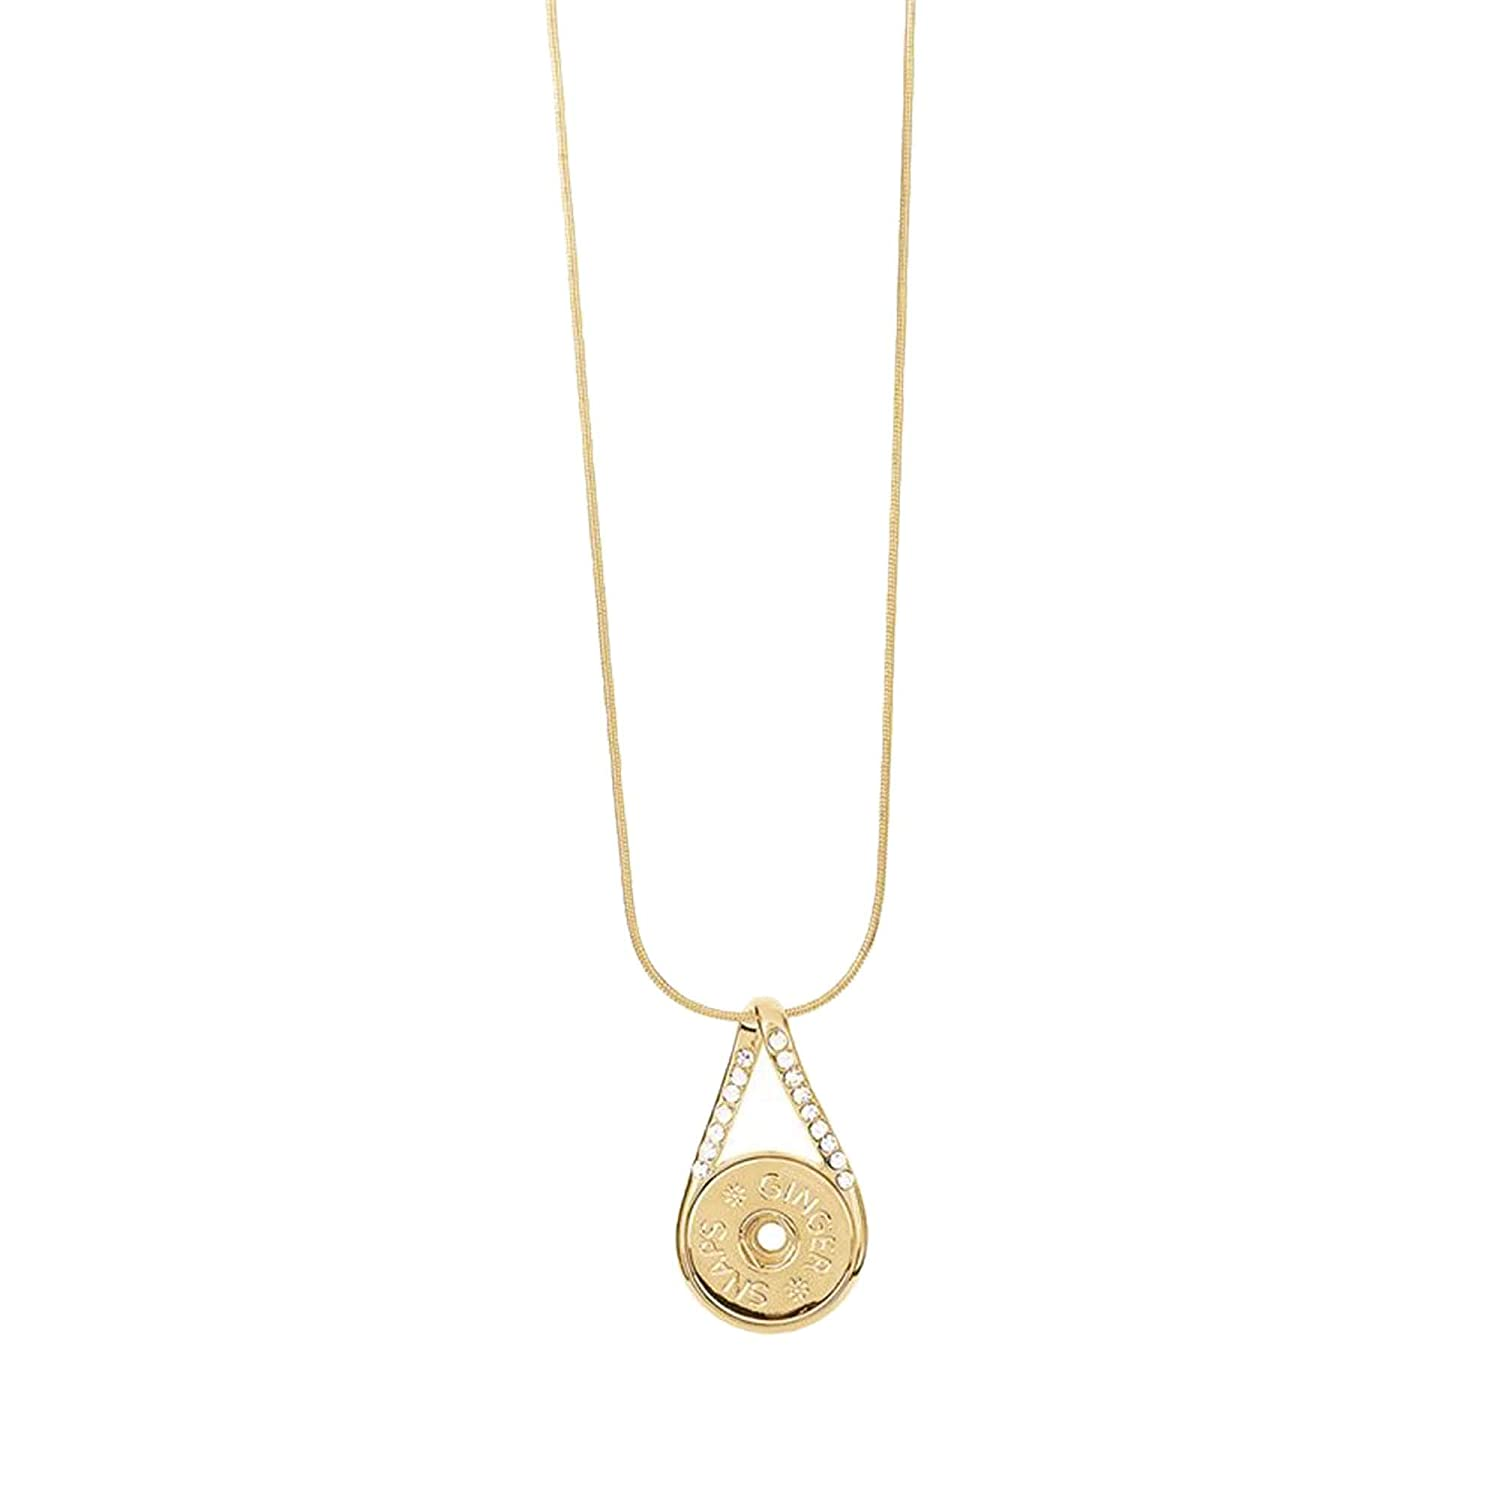 Ginger Snaps Gold Bling Infinity Necklace SN96-22 Standard Size Interchangeable Jewelry